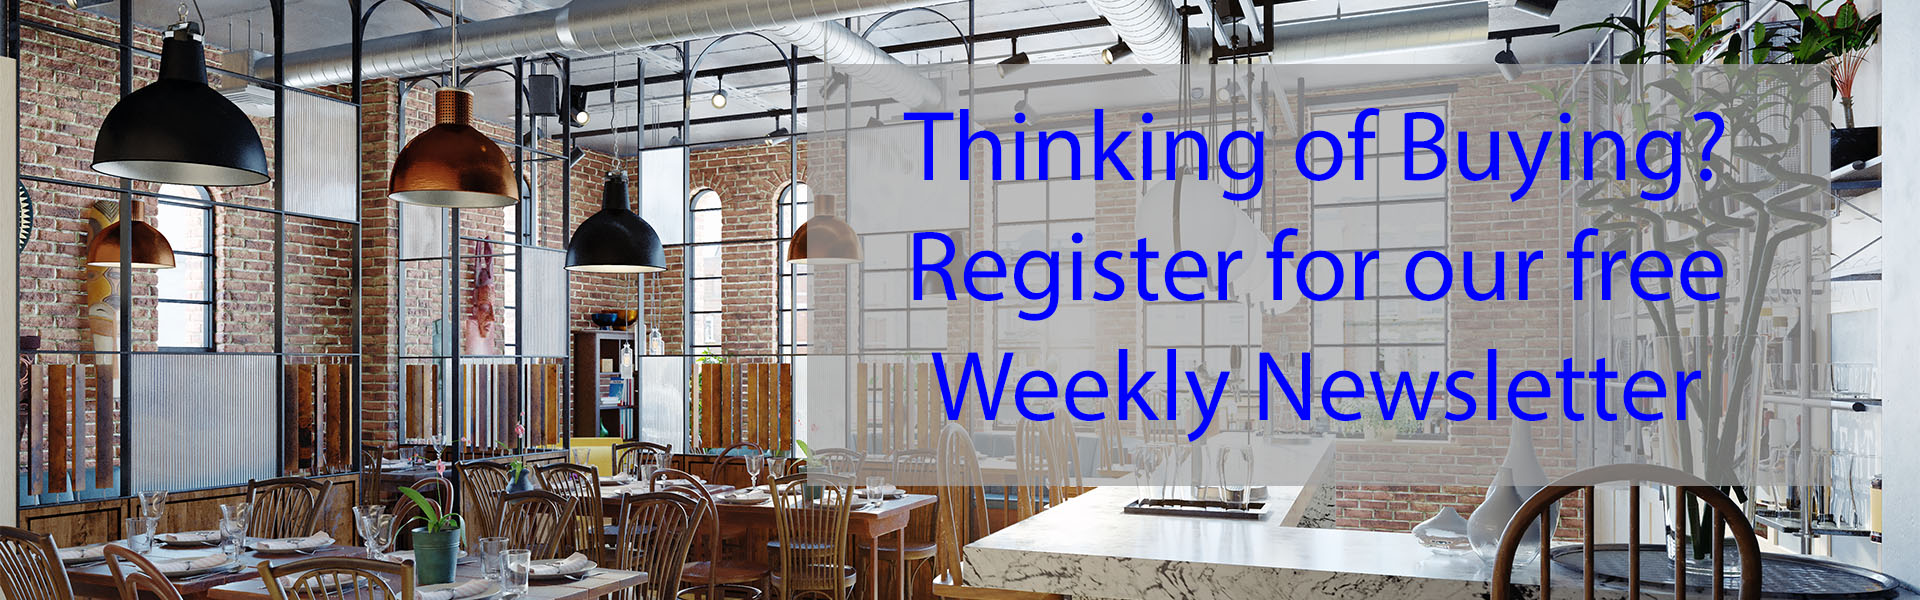 Thinking of Buying? 	Register for our free Weekly Newsletter